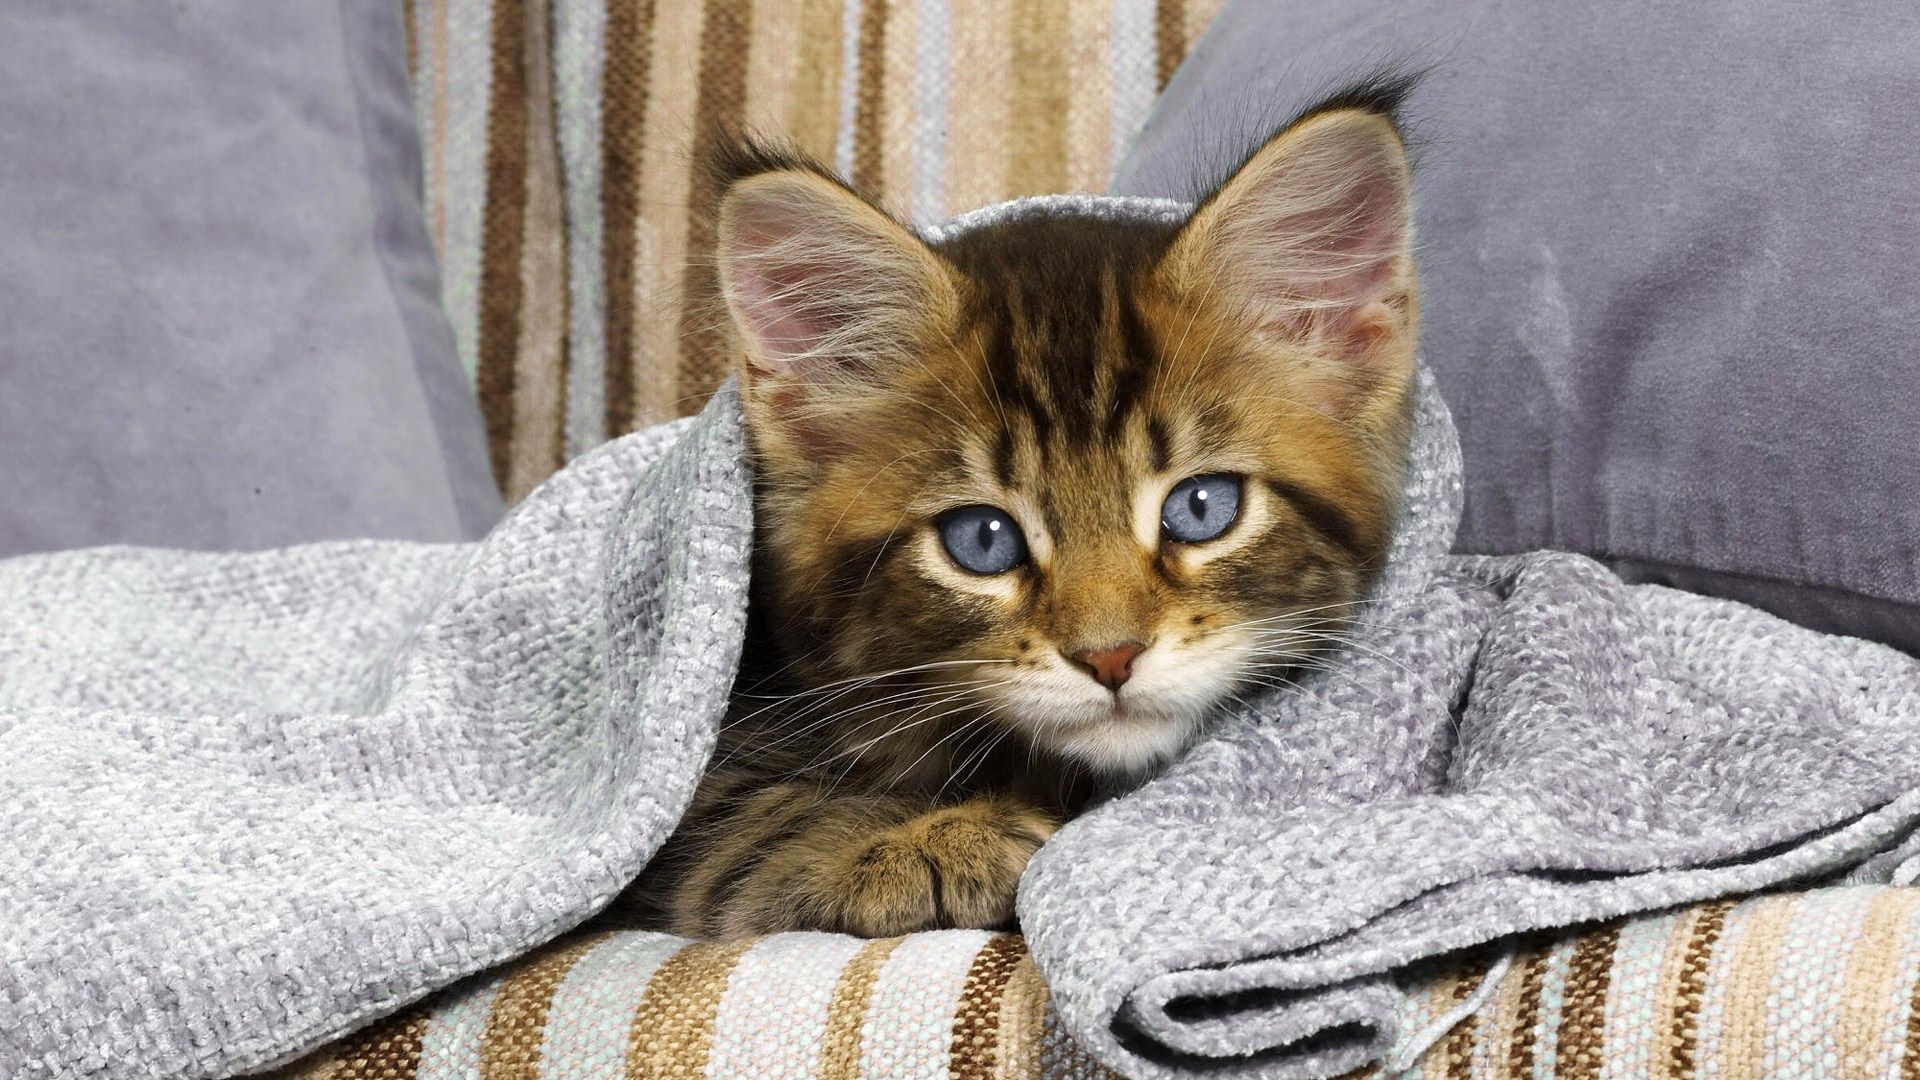 Cat Theme Background Images Eartha Murphy 1920x1080 Cats Cat Wallpaper Cat Cuddle